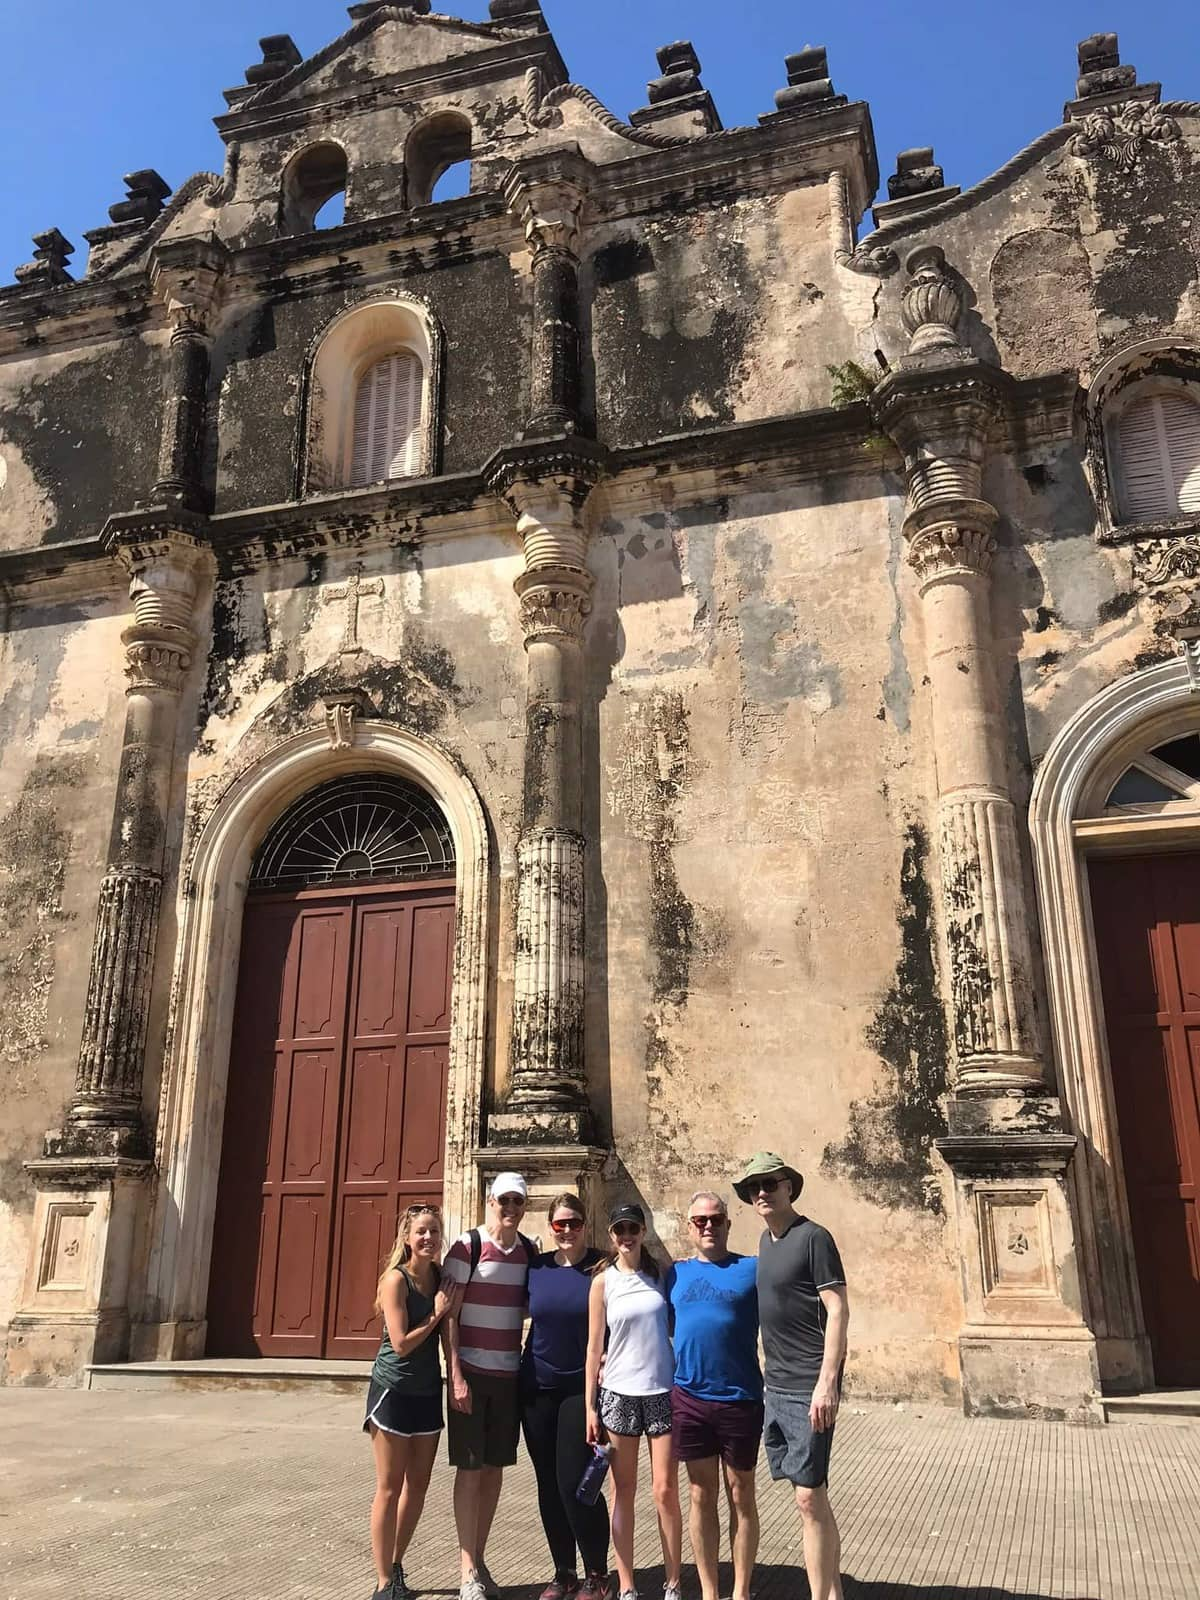 People in front of a church.